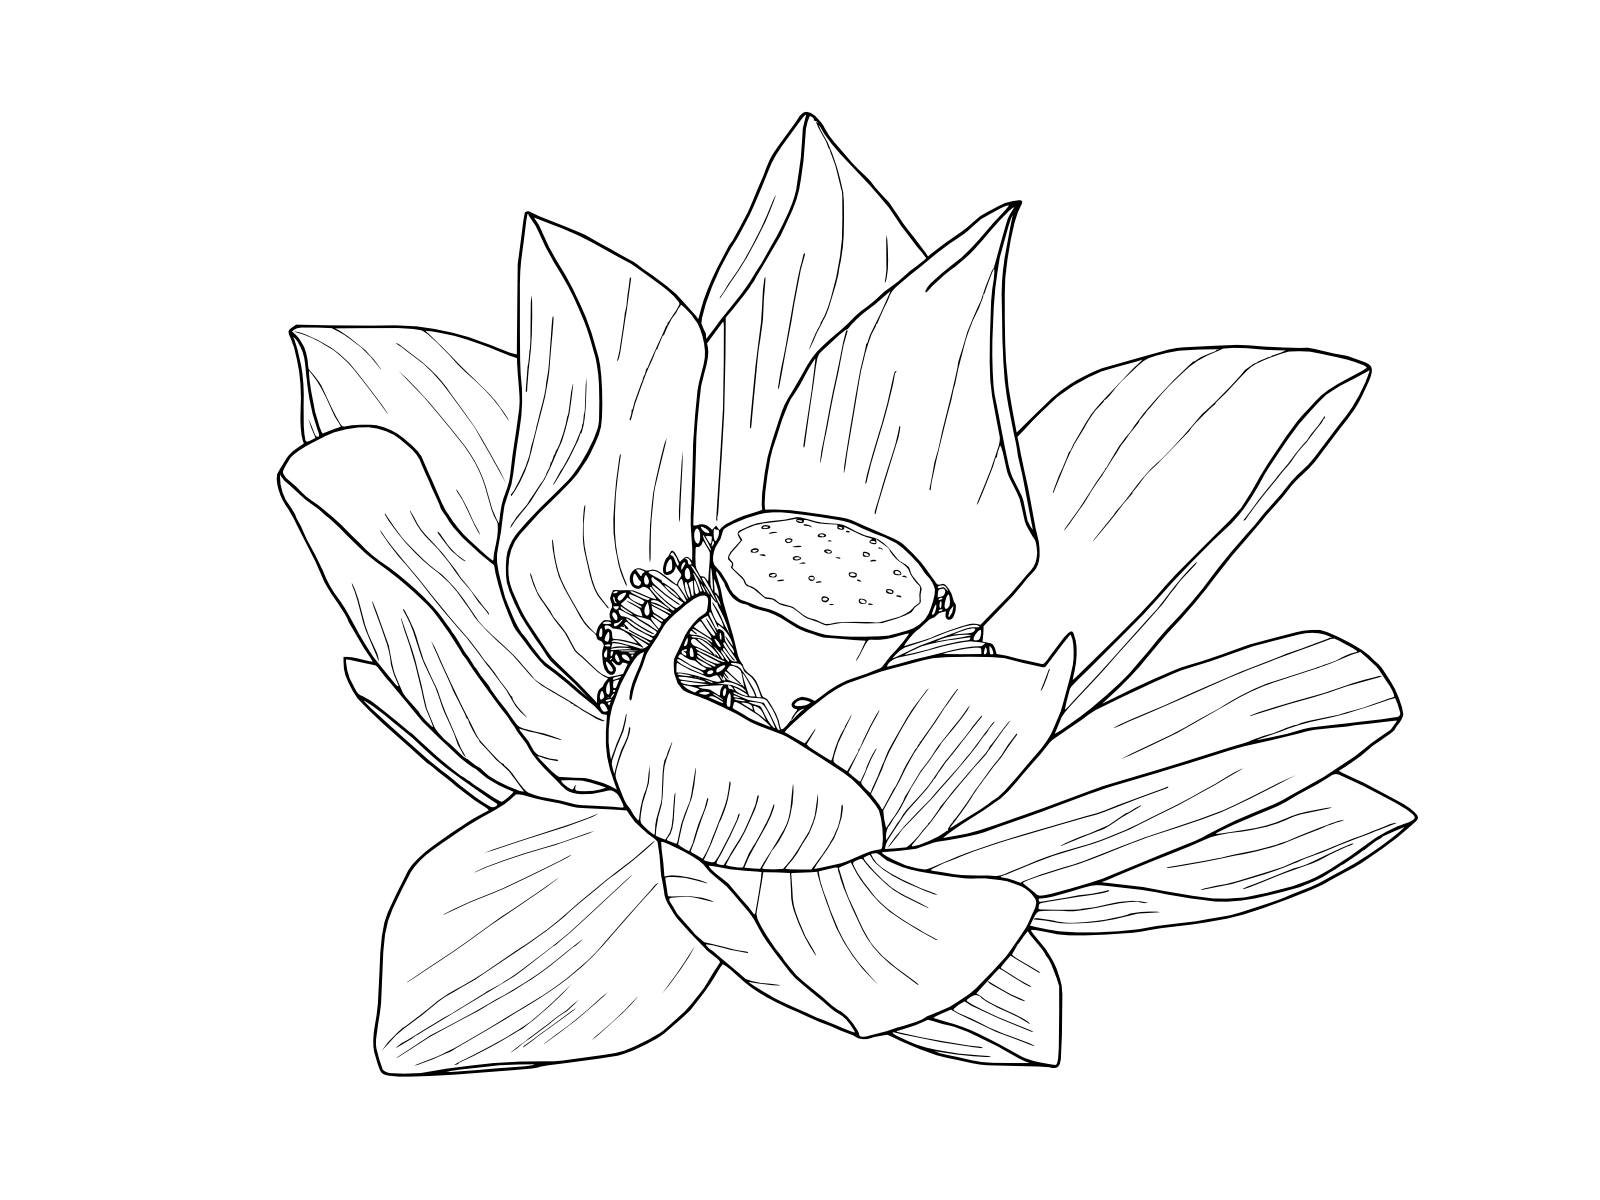 Simple lotus flower drawing at getdrawings free for personal 1600x1200 lotus clipart flower outline mightylinksfo Image collections